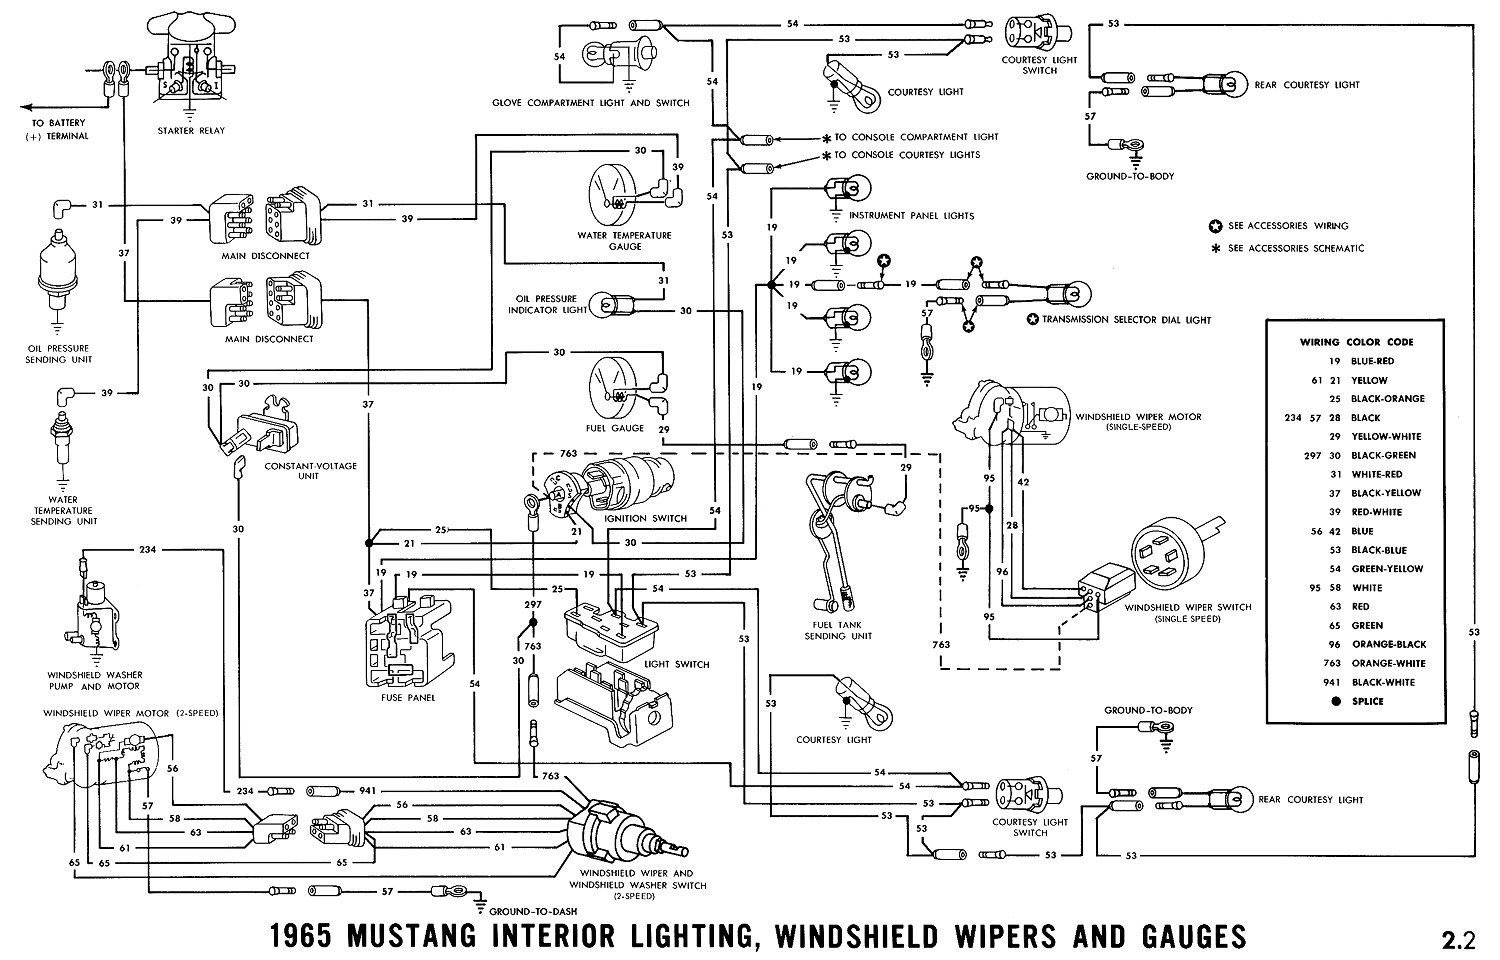 1965g 1965 mustang wiring diagrams average joe restoration 1965 mustang instrument cluster wiring diagram at n-0.co